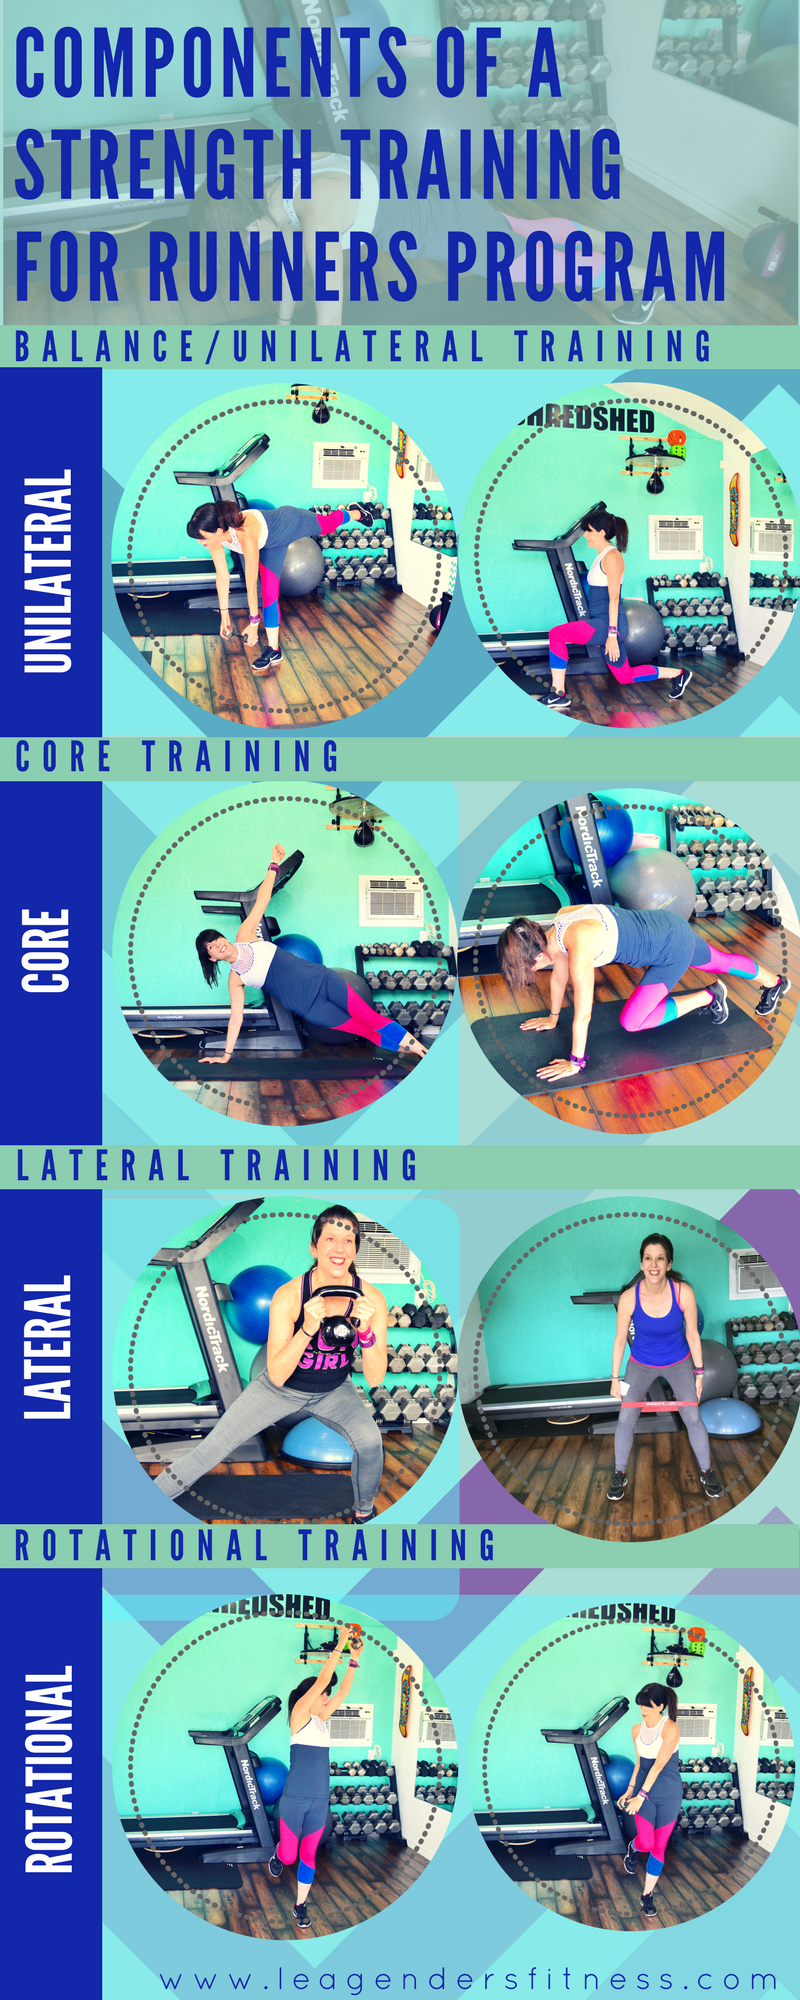 components of a strength training for runners programming. save to pinterest for later